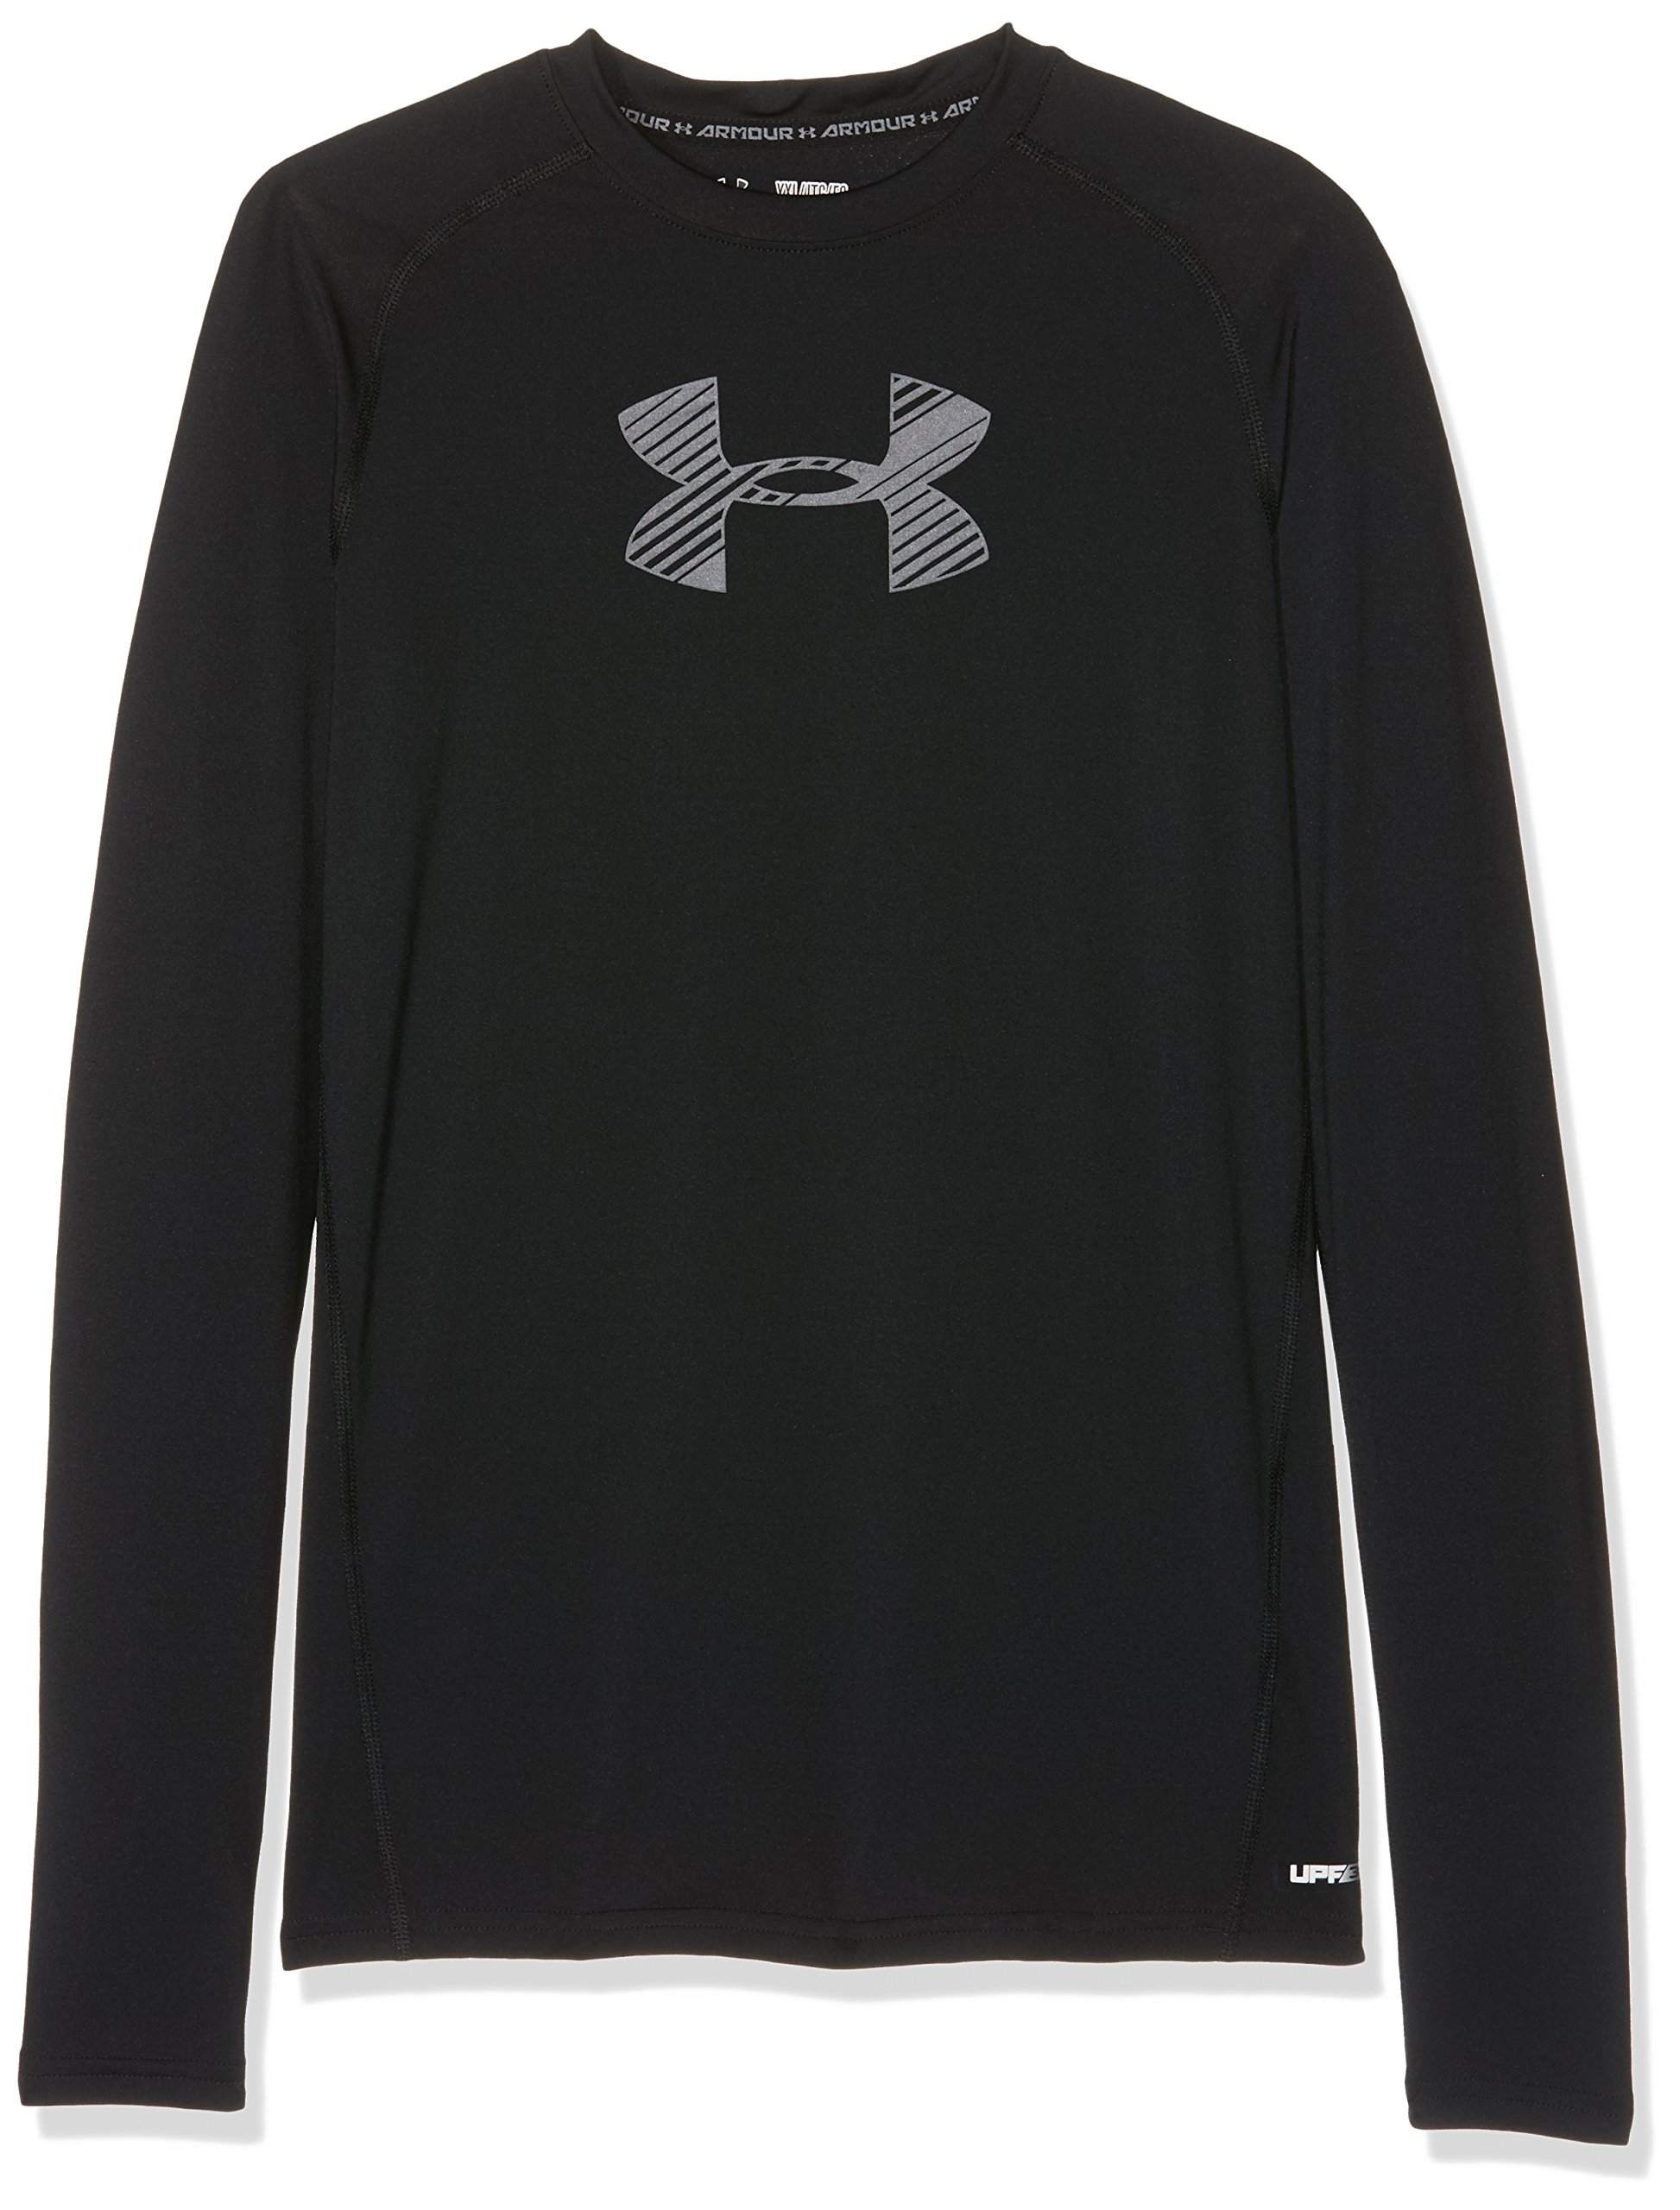 Under Armour Boys' HeatGear Armour Long Sleeve, Black (002)/Graphite, Youth X-Large by Under Armour